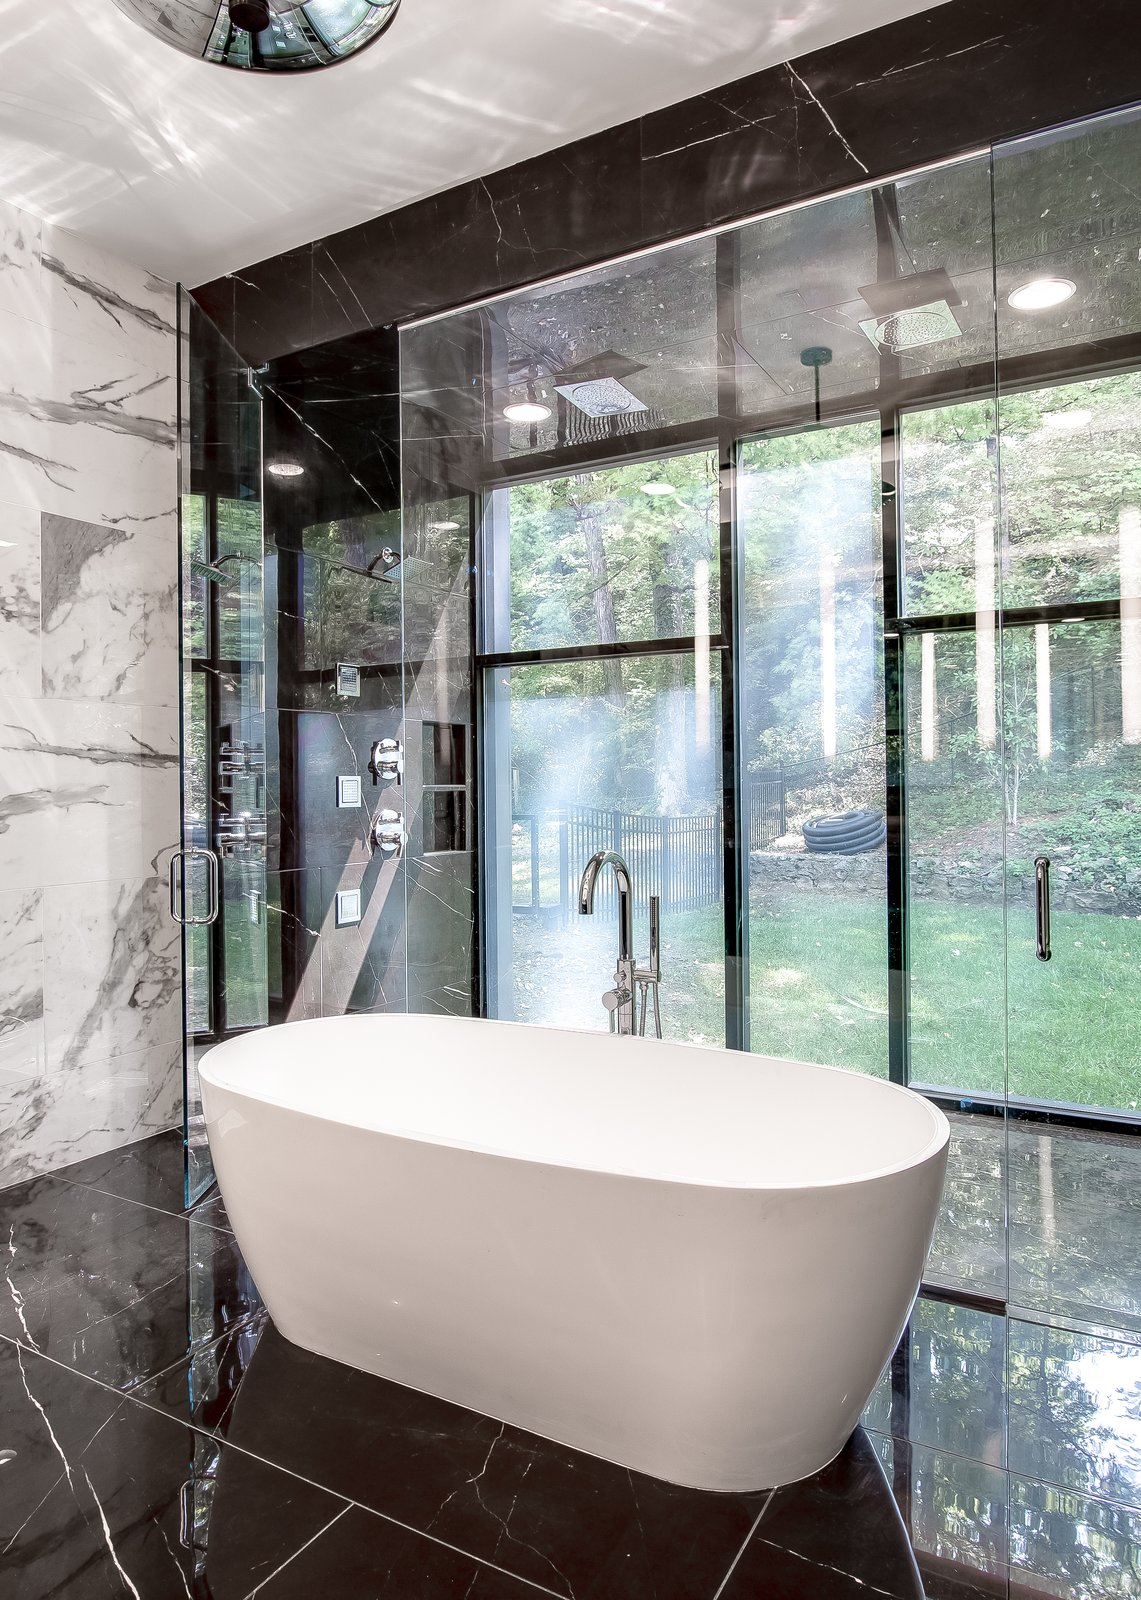 Bath Room, Marble Floor, Freestanding Tub, Marble Wall, Enclosed Shower, and Pendant Lighting  Modern View